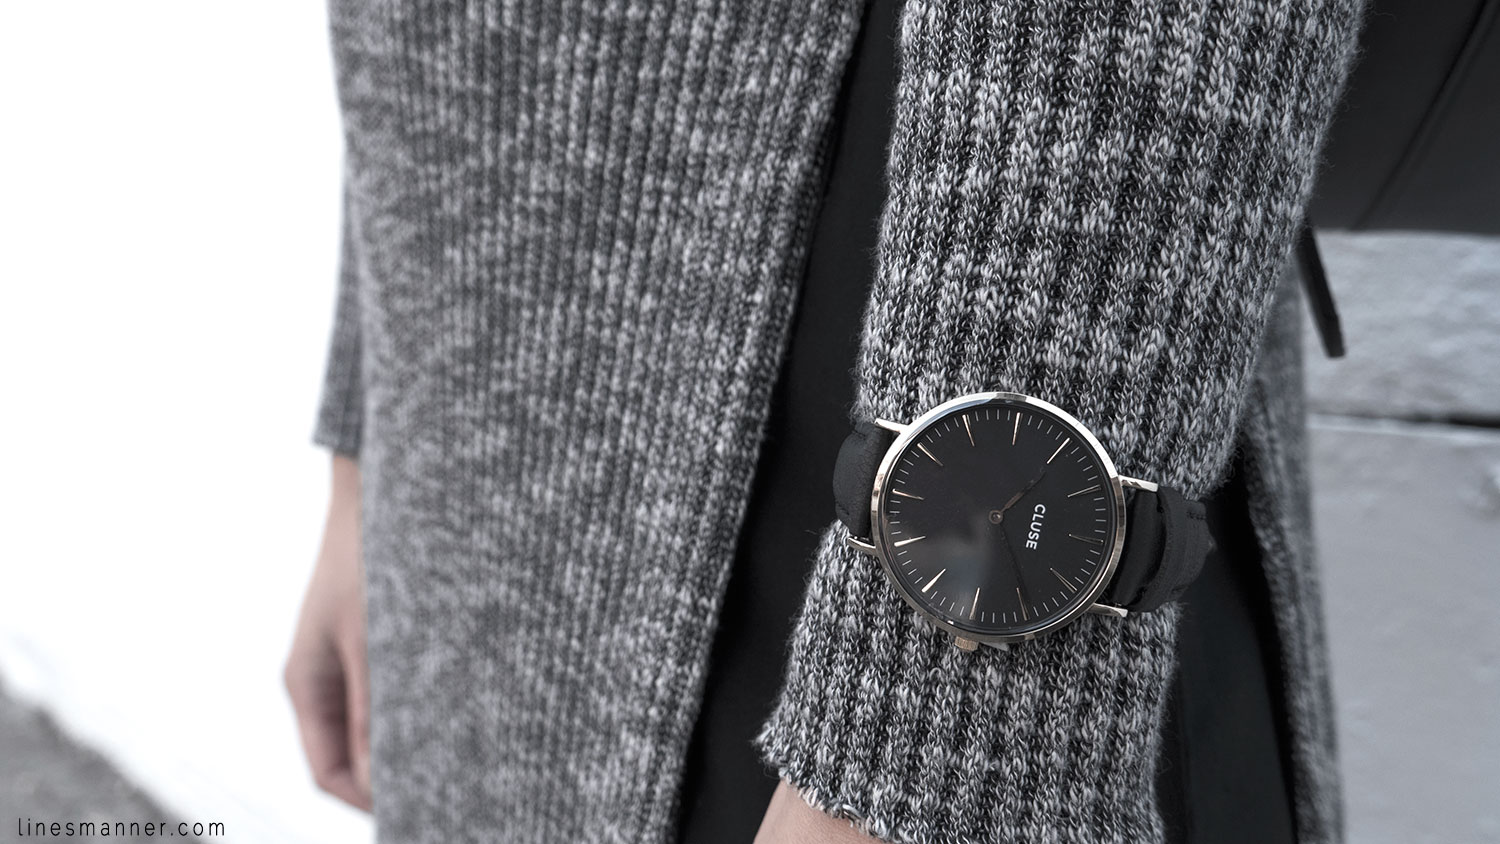 Lines-Manner-Remind-2015-Minimal-Essential-Outfit-Inspiration-Blog-Timeless-Year-Seasons-Details-Travel-Fashion-Versatile-Clean-Sleek-Quality-10